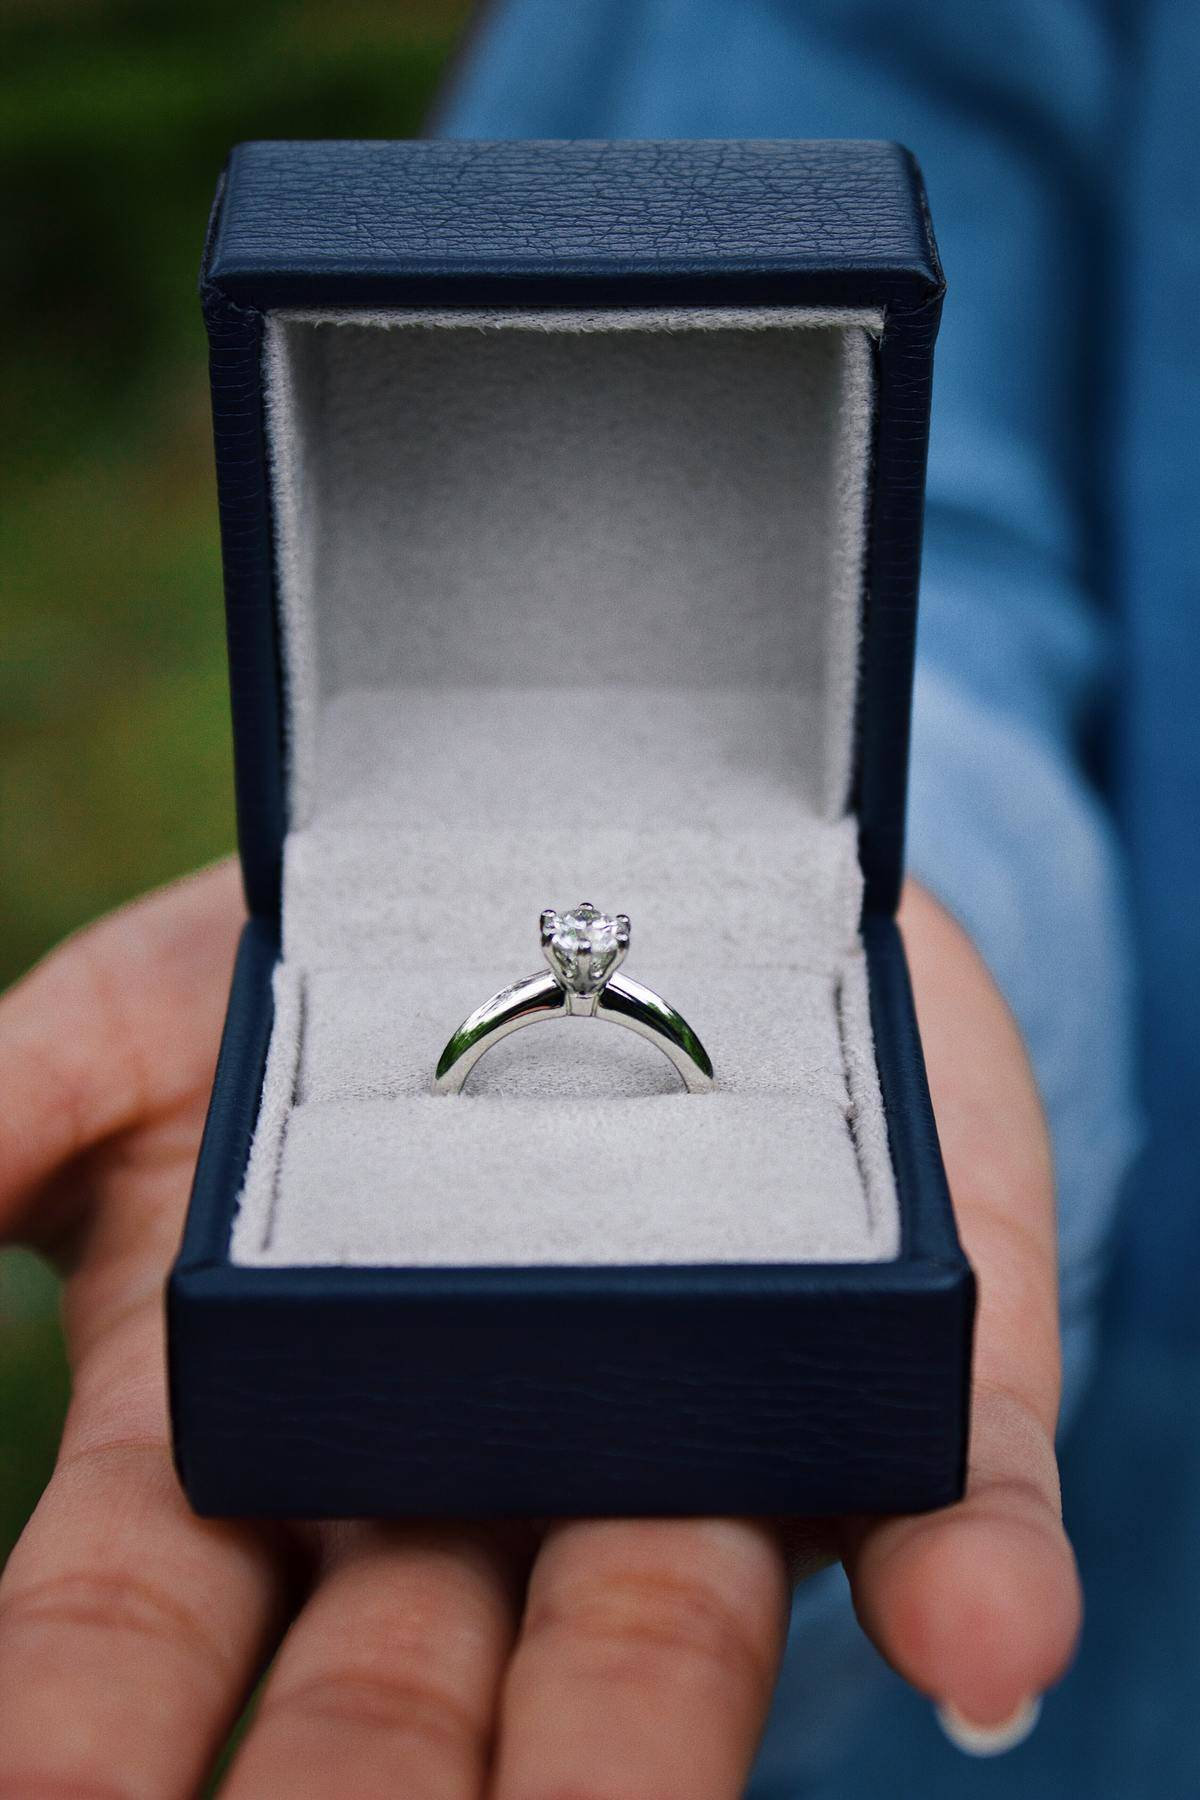 Hand holds out a box that contains a diamond engagement ring